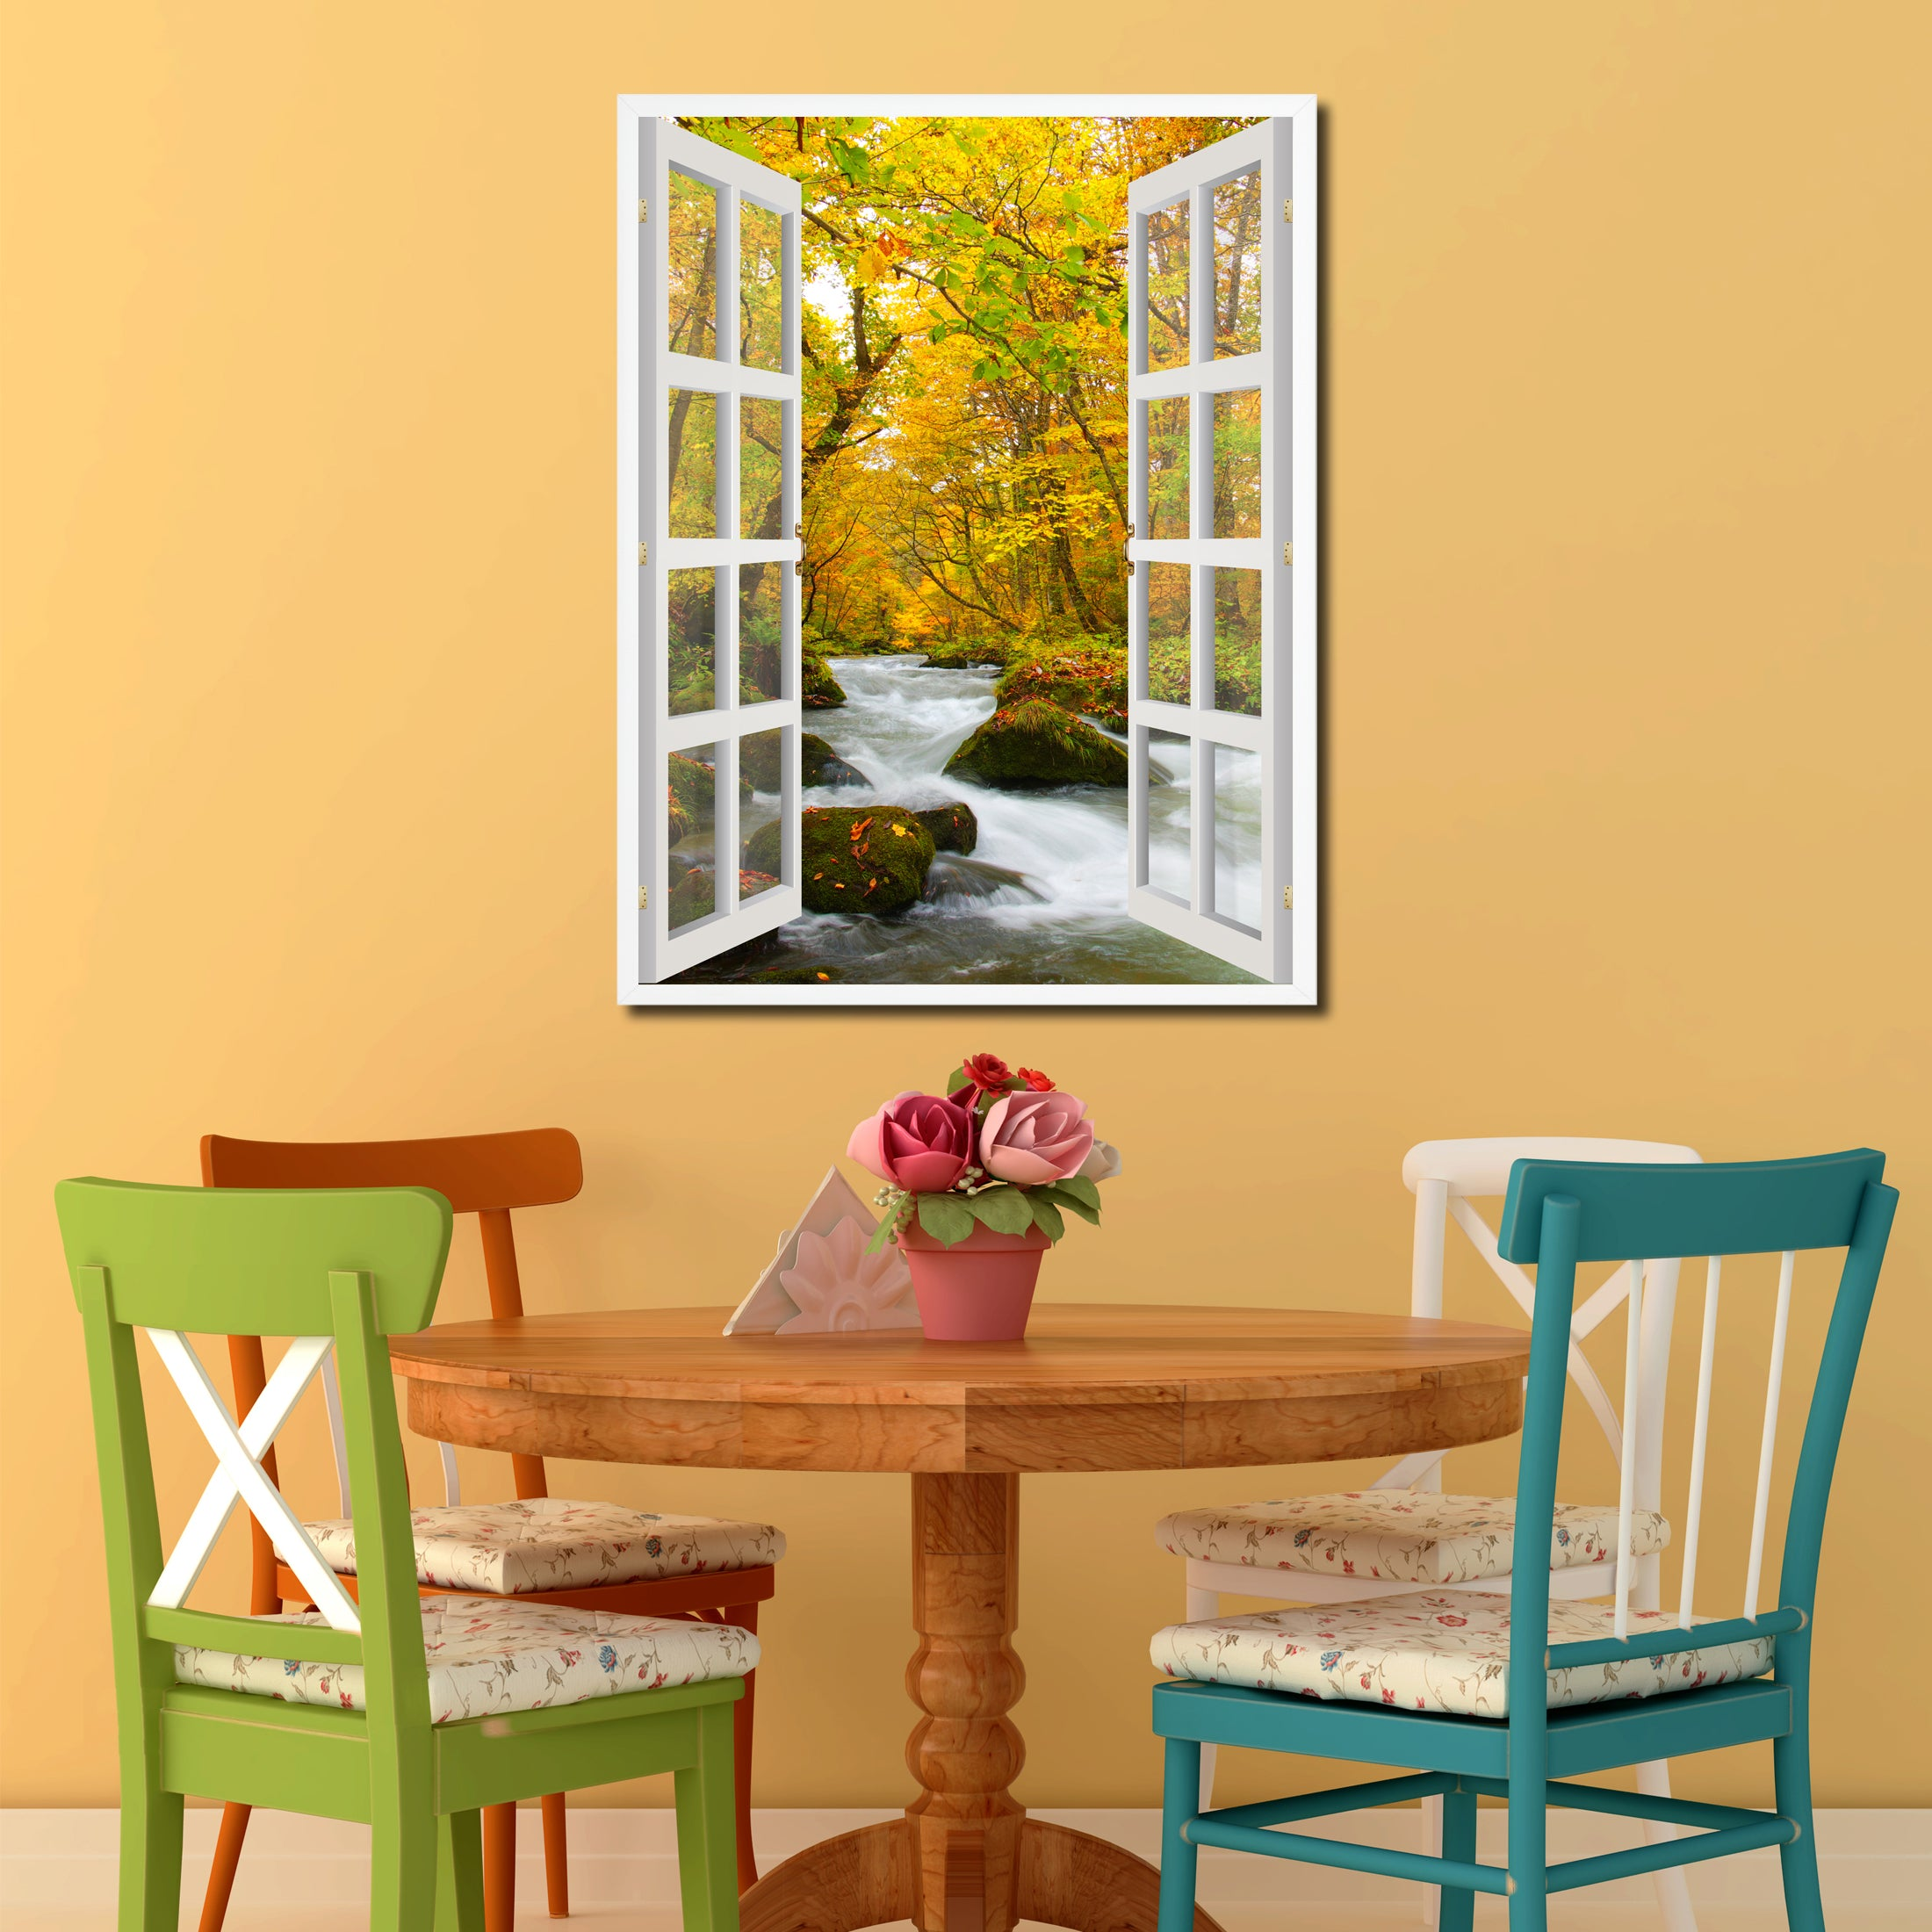 Autumn River Picture French Window Canvas Print With Frame Gifts Home Decor  Wall Art Collection